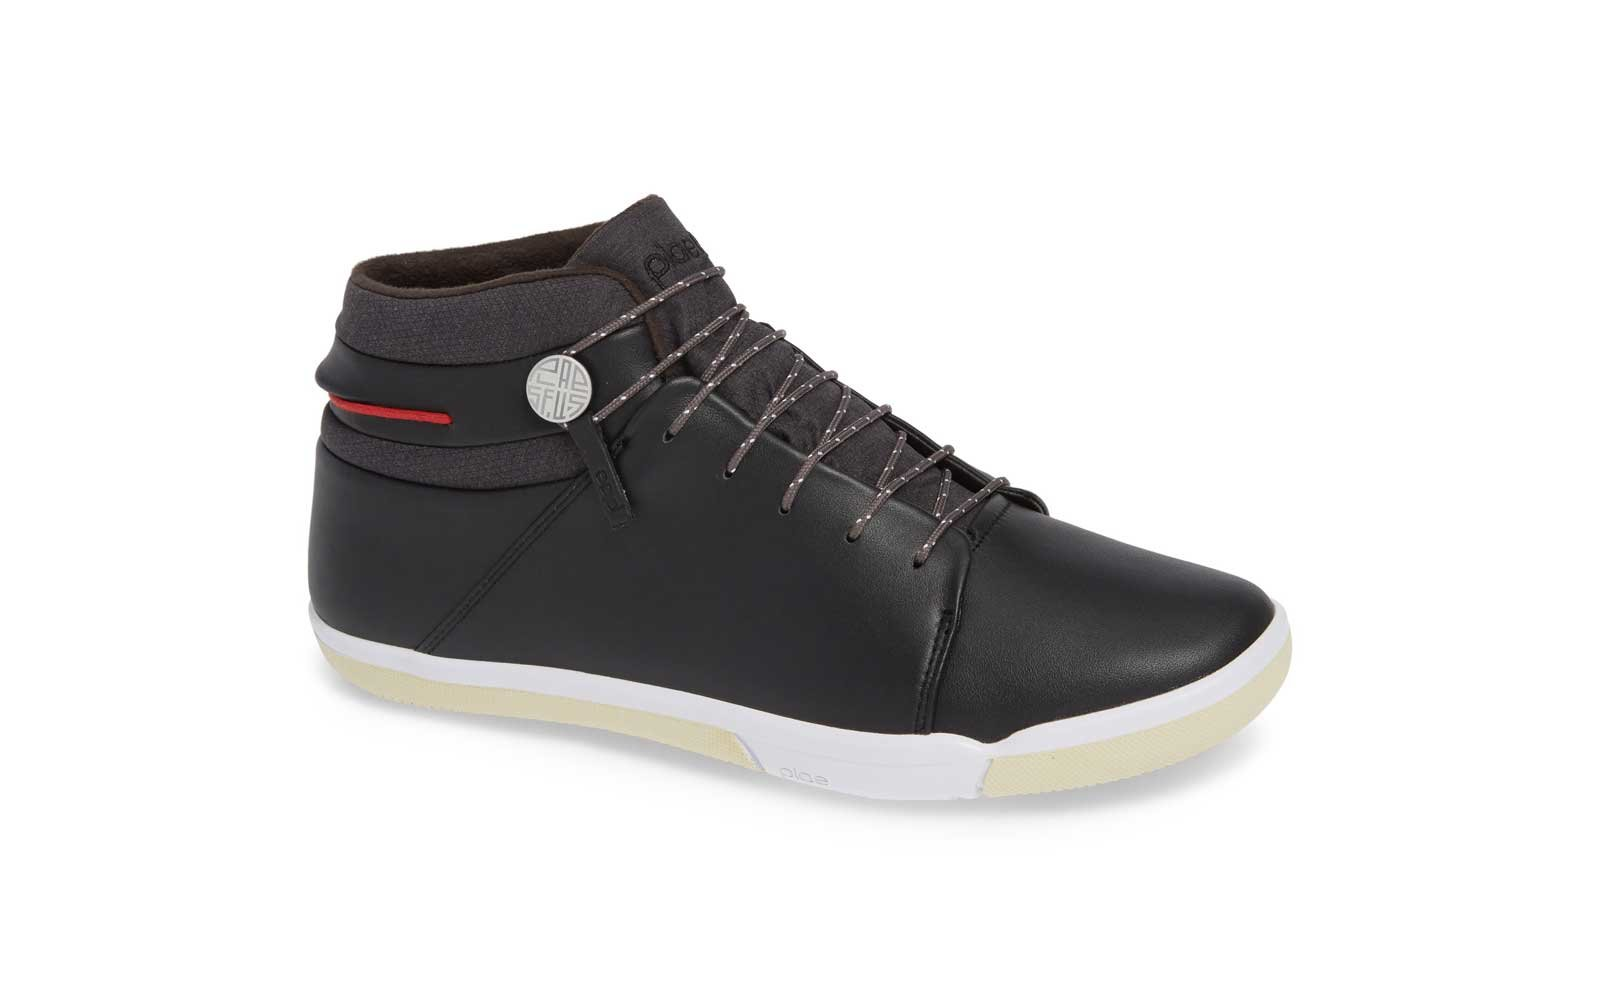 plae waterproof sneakers